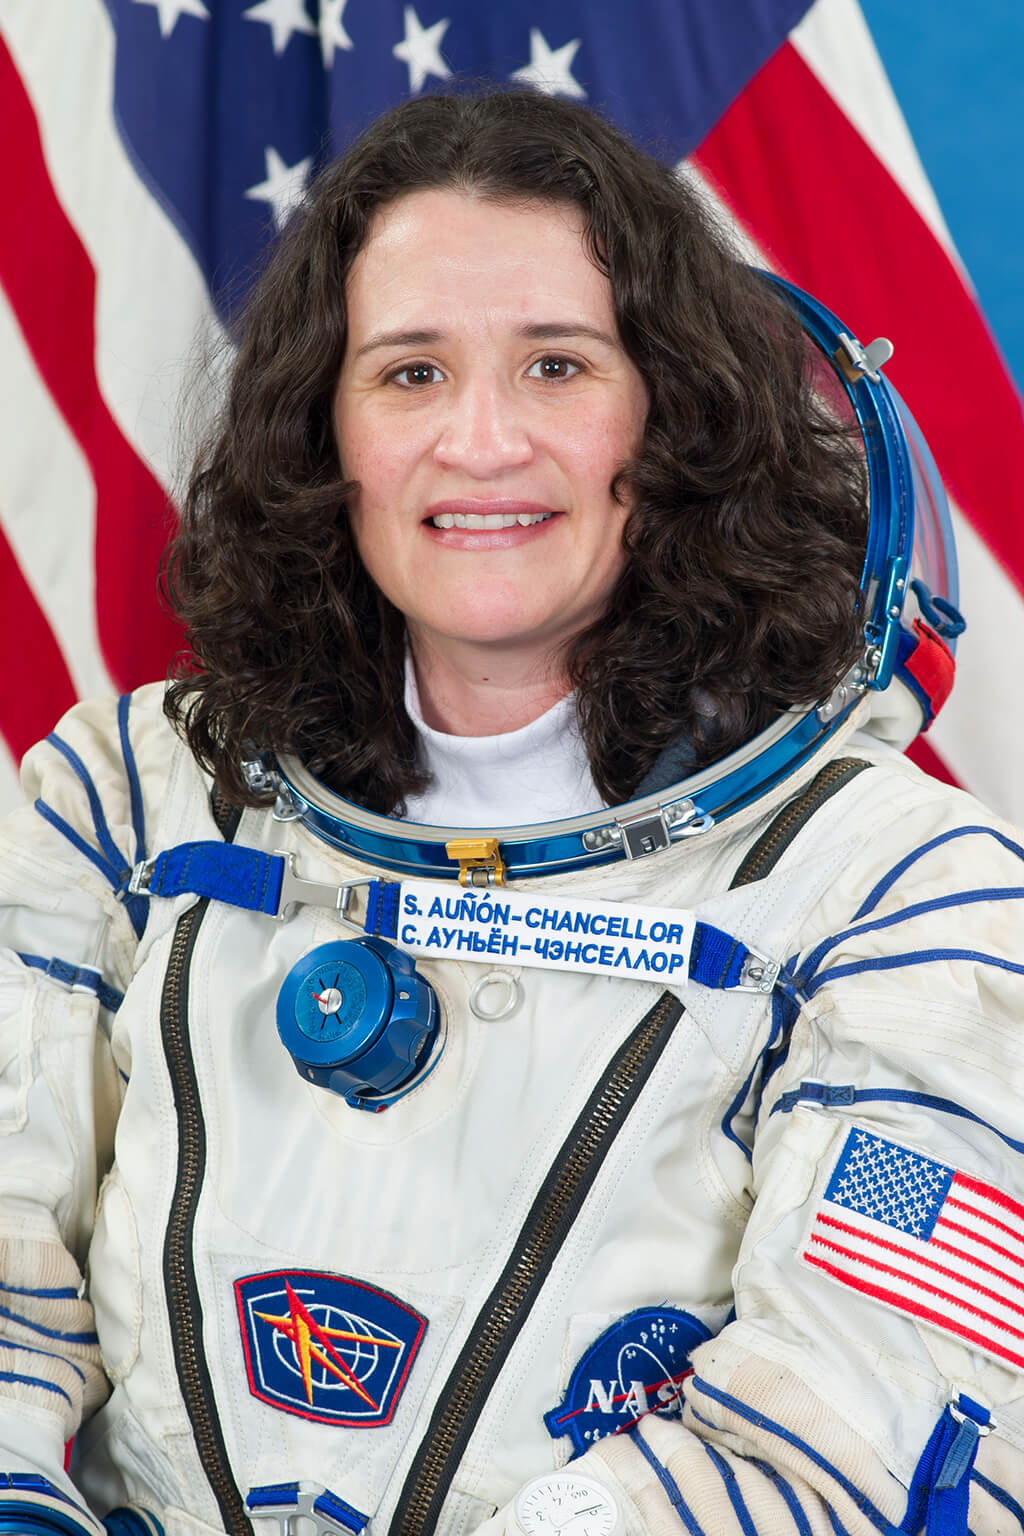 Astronaut Serena Auñón-Chancellor 2019 Keynote Speaker at the ISS R&D Conference